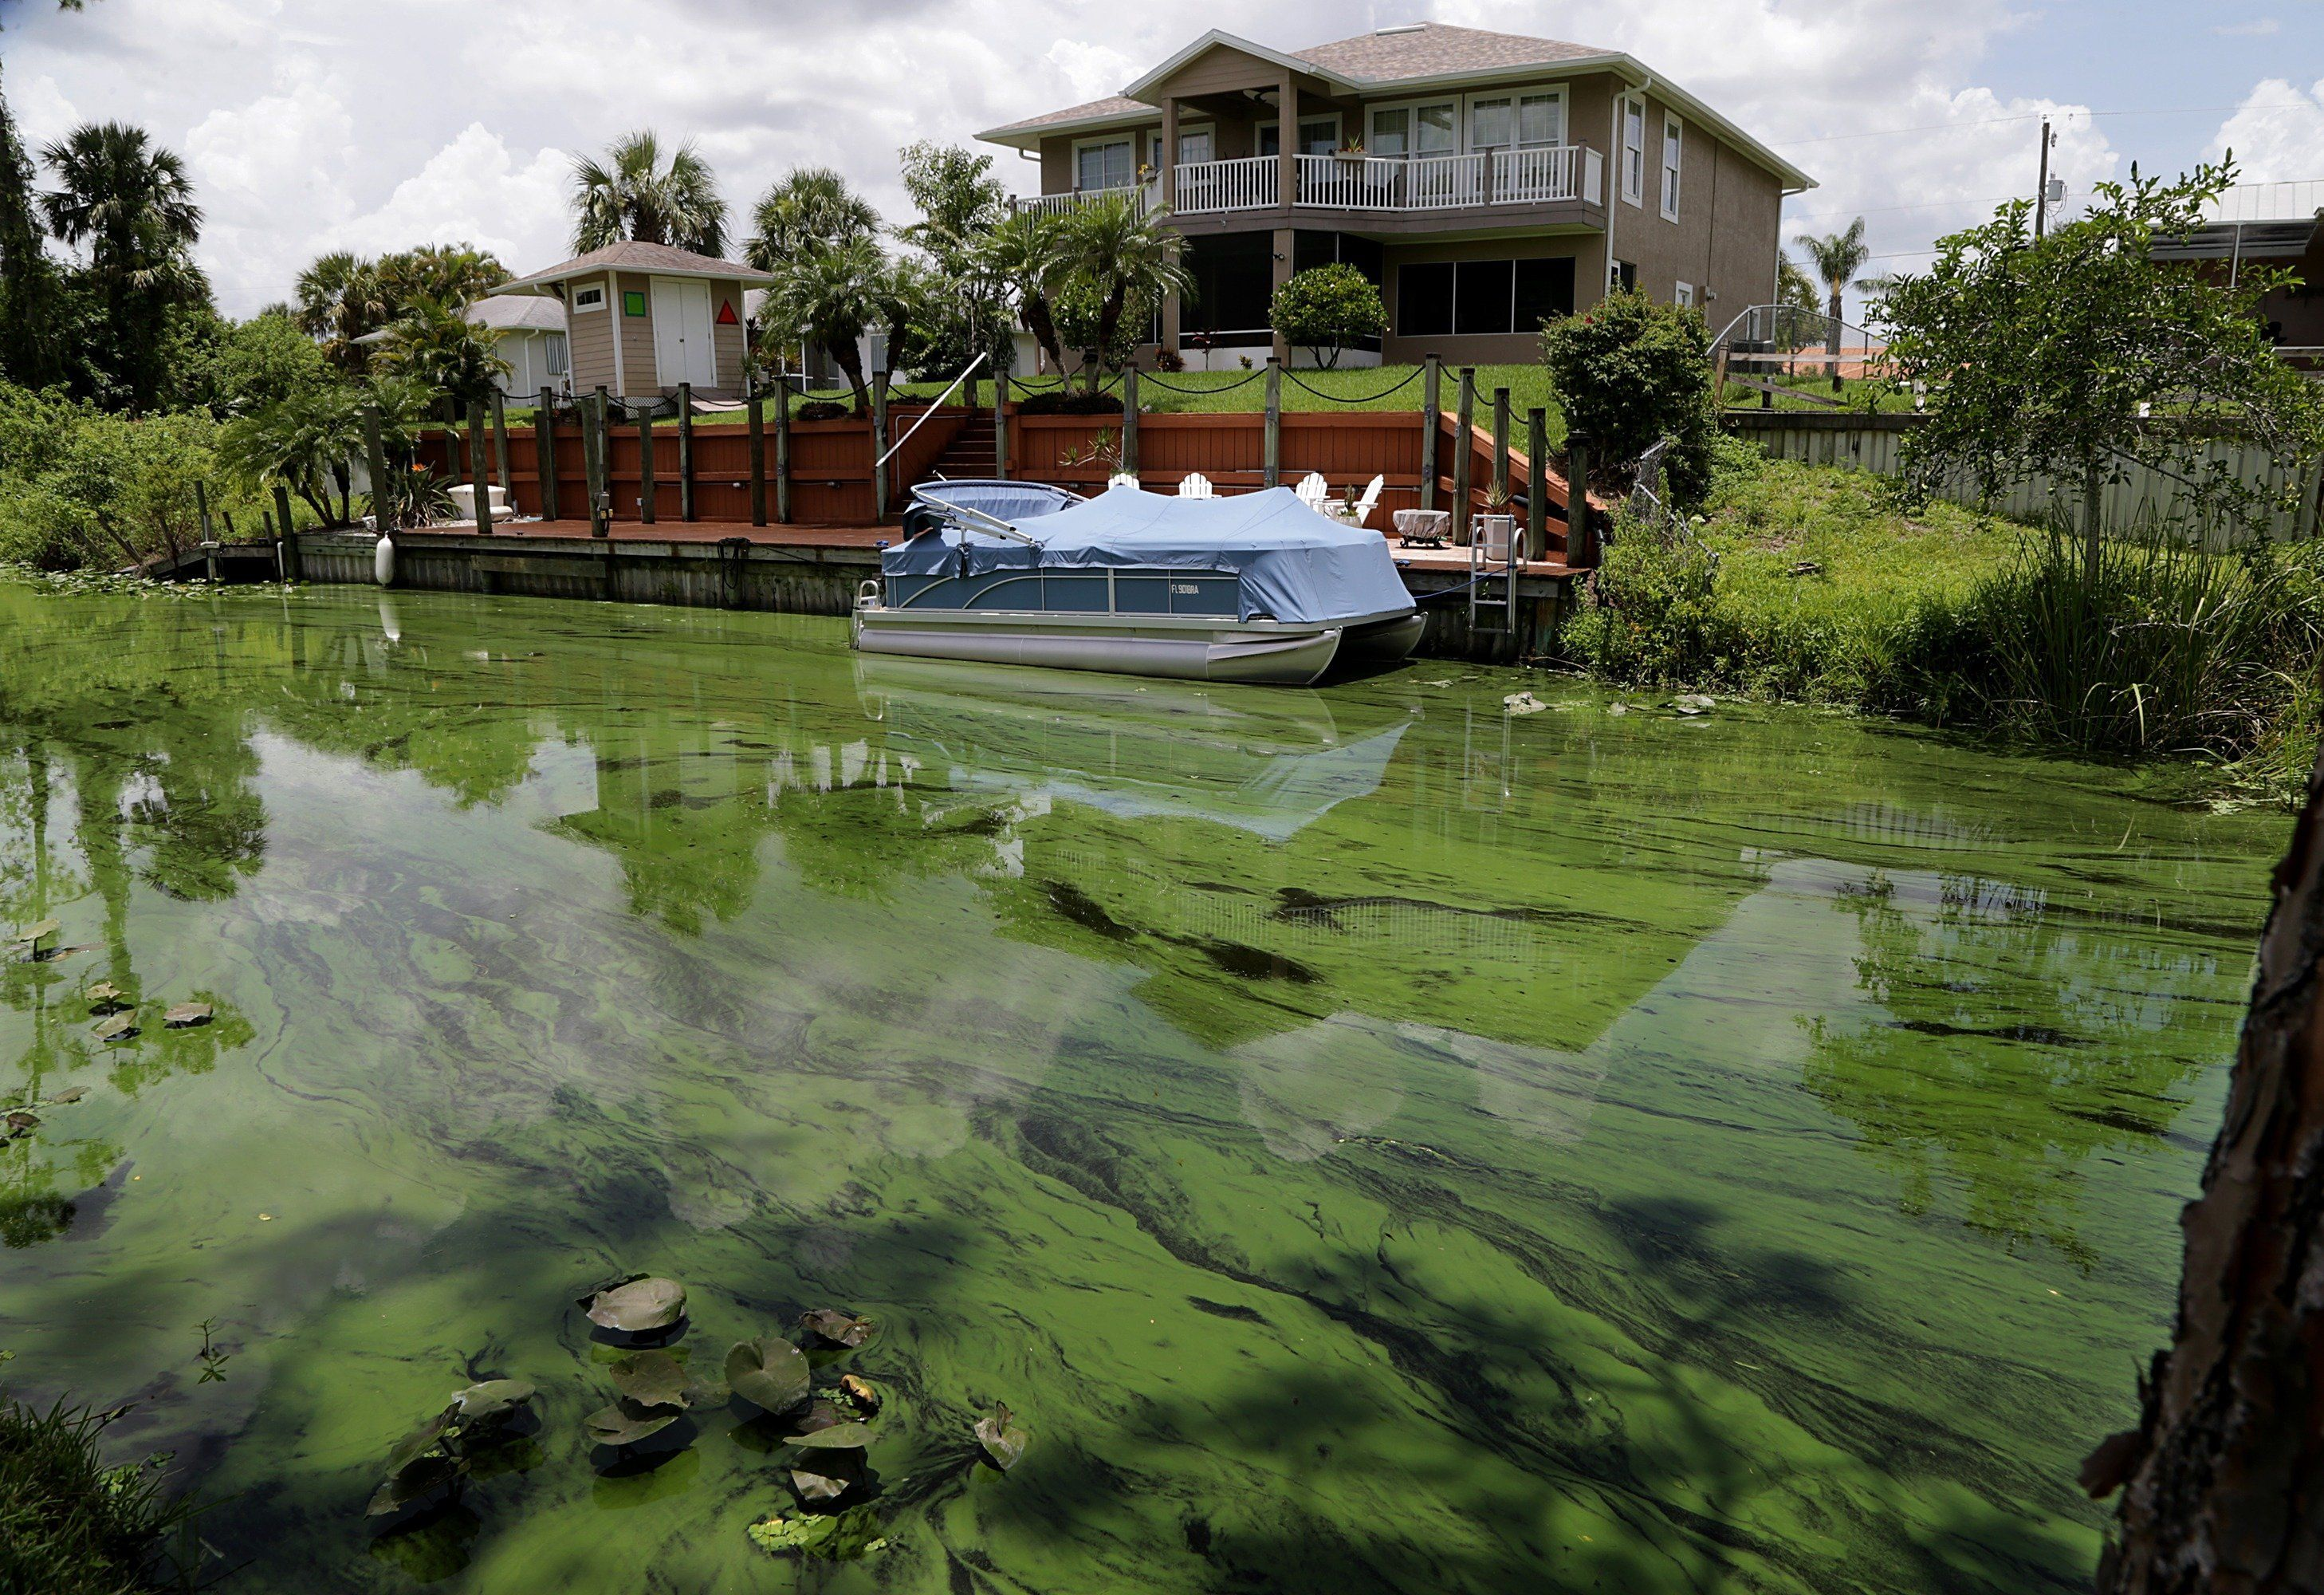 A deepening algae bloom seen at a canal behind houses on the south side of Calooshatchee River in the River Oaks on June 27